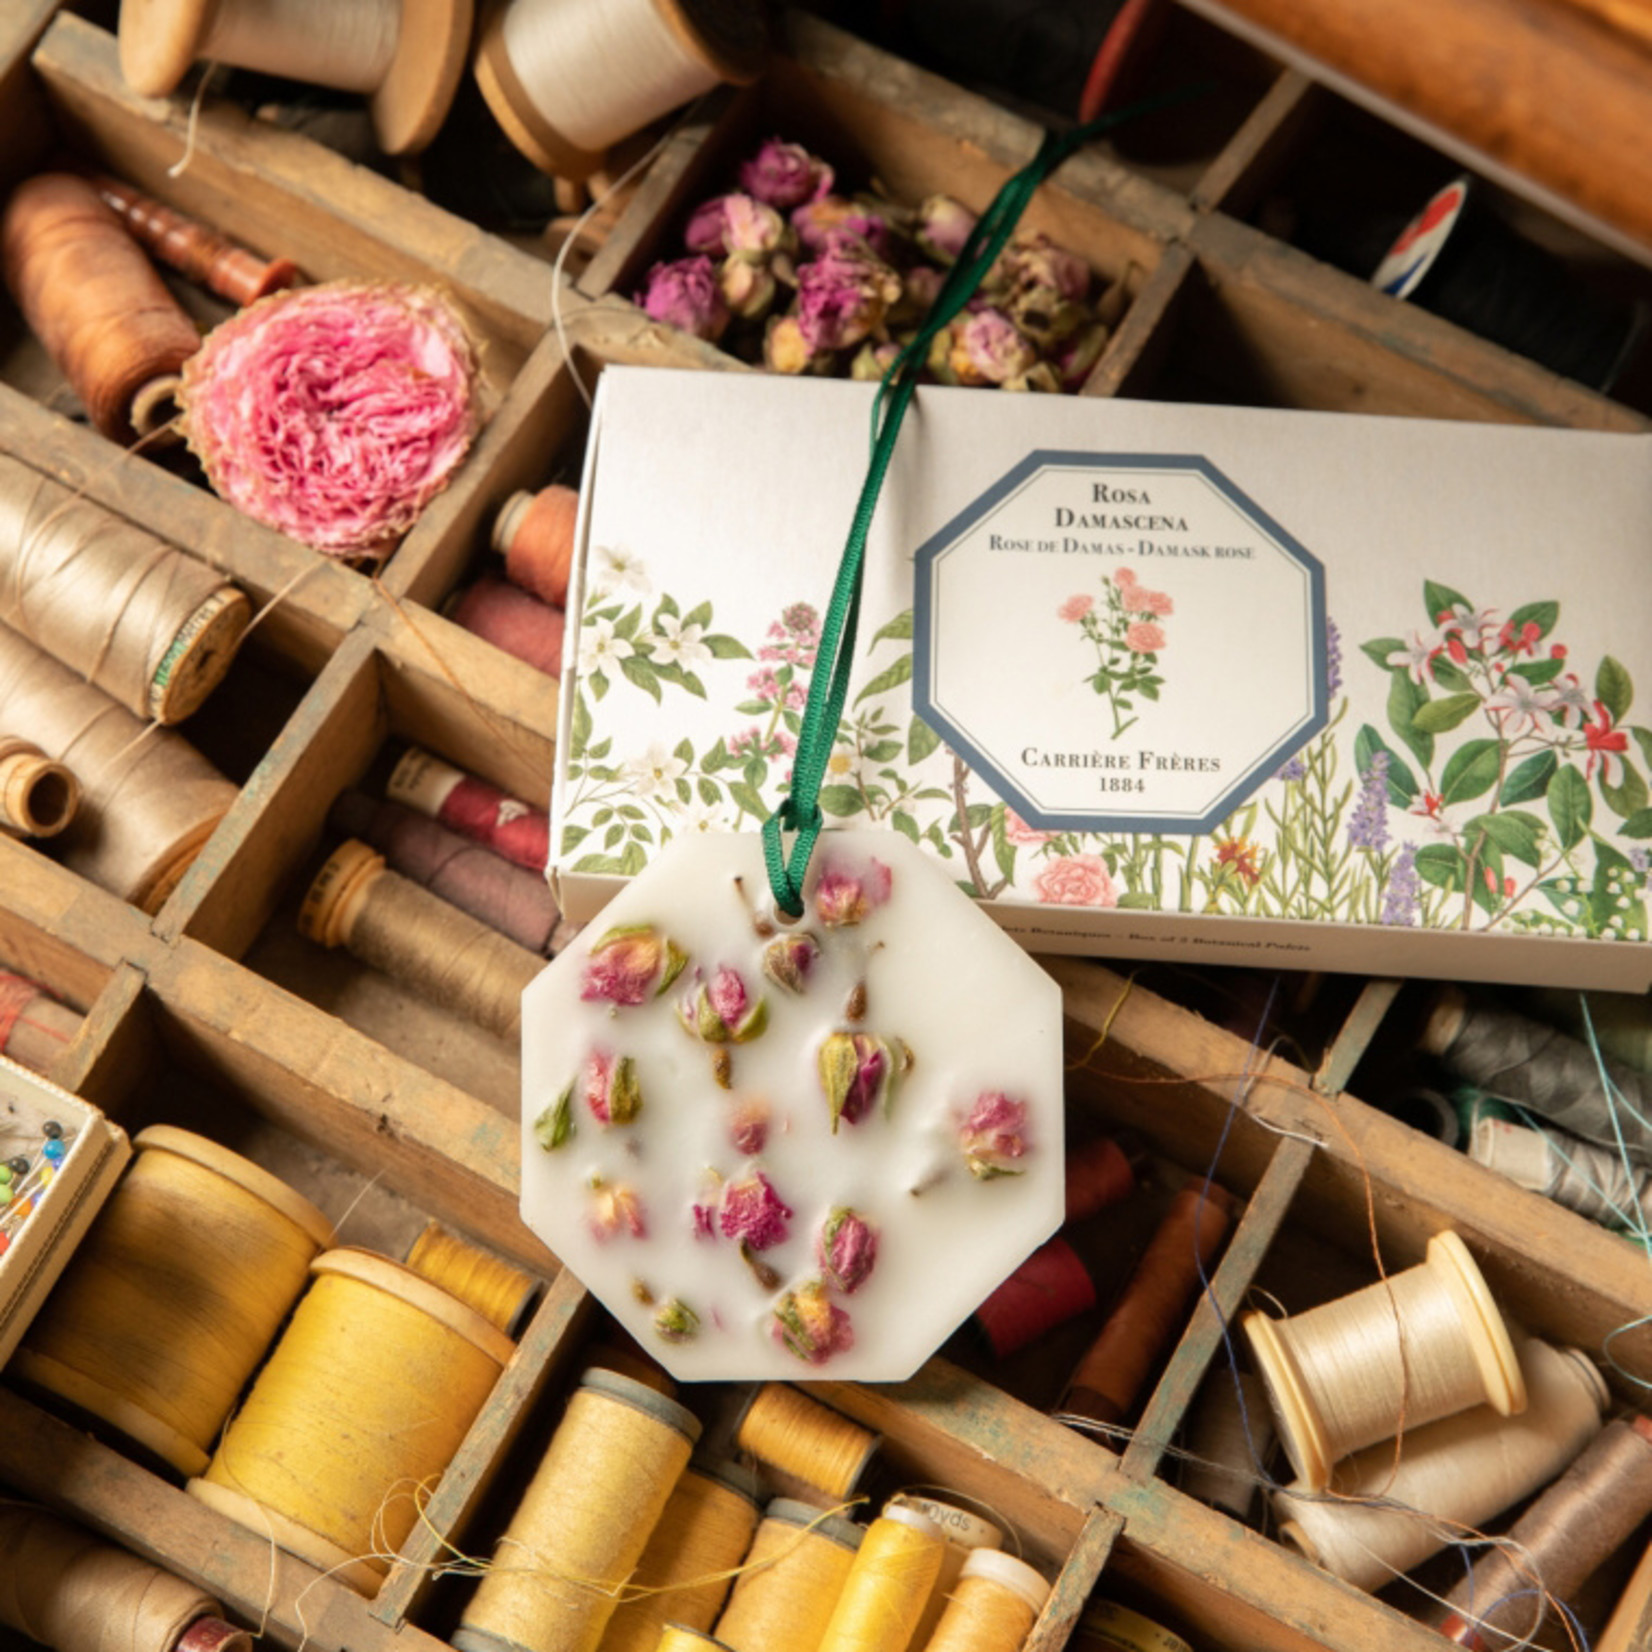 Carriere Freres Botanical Palet